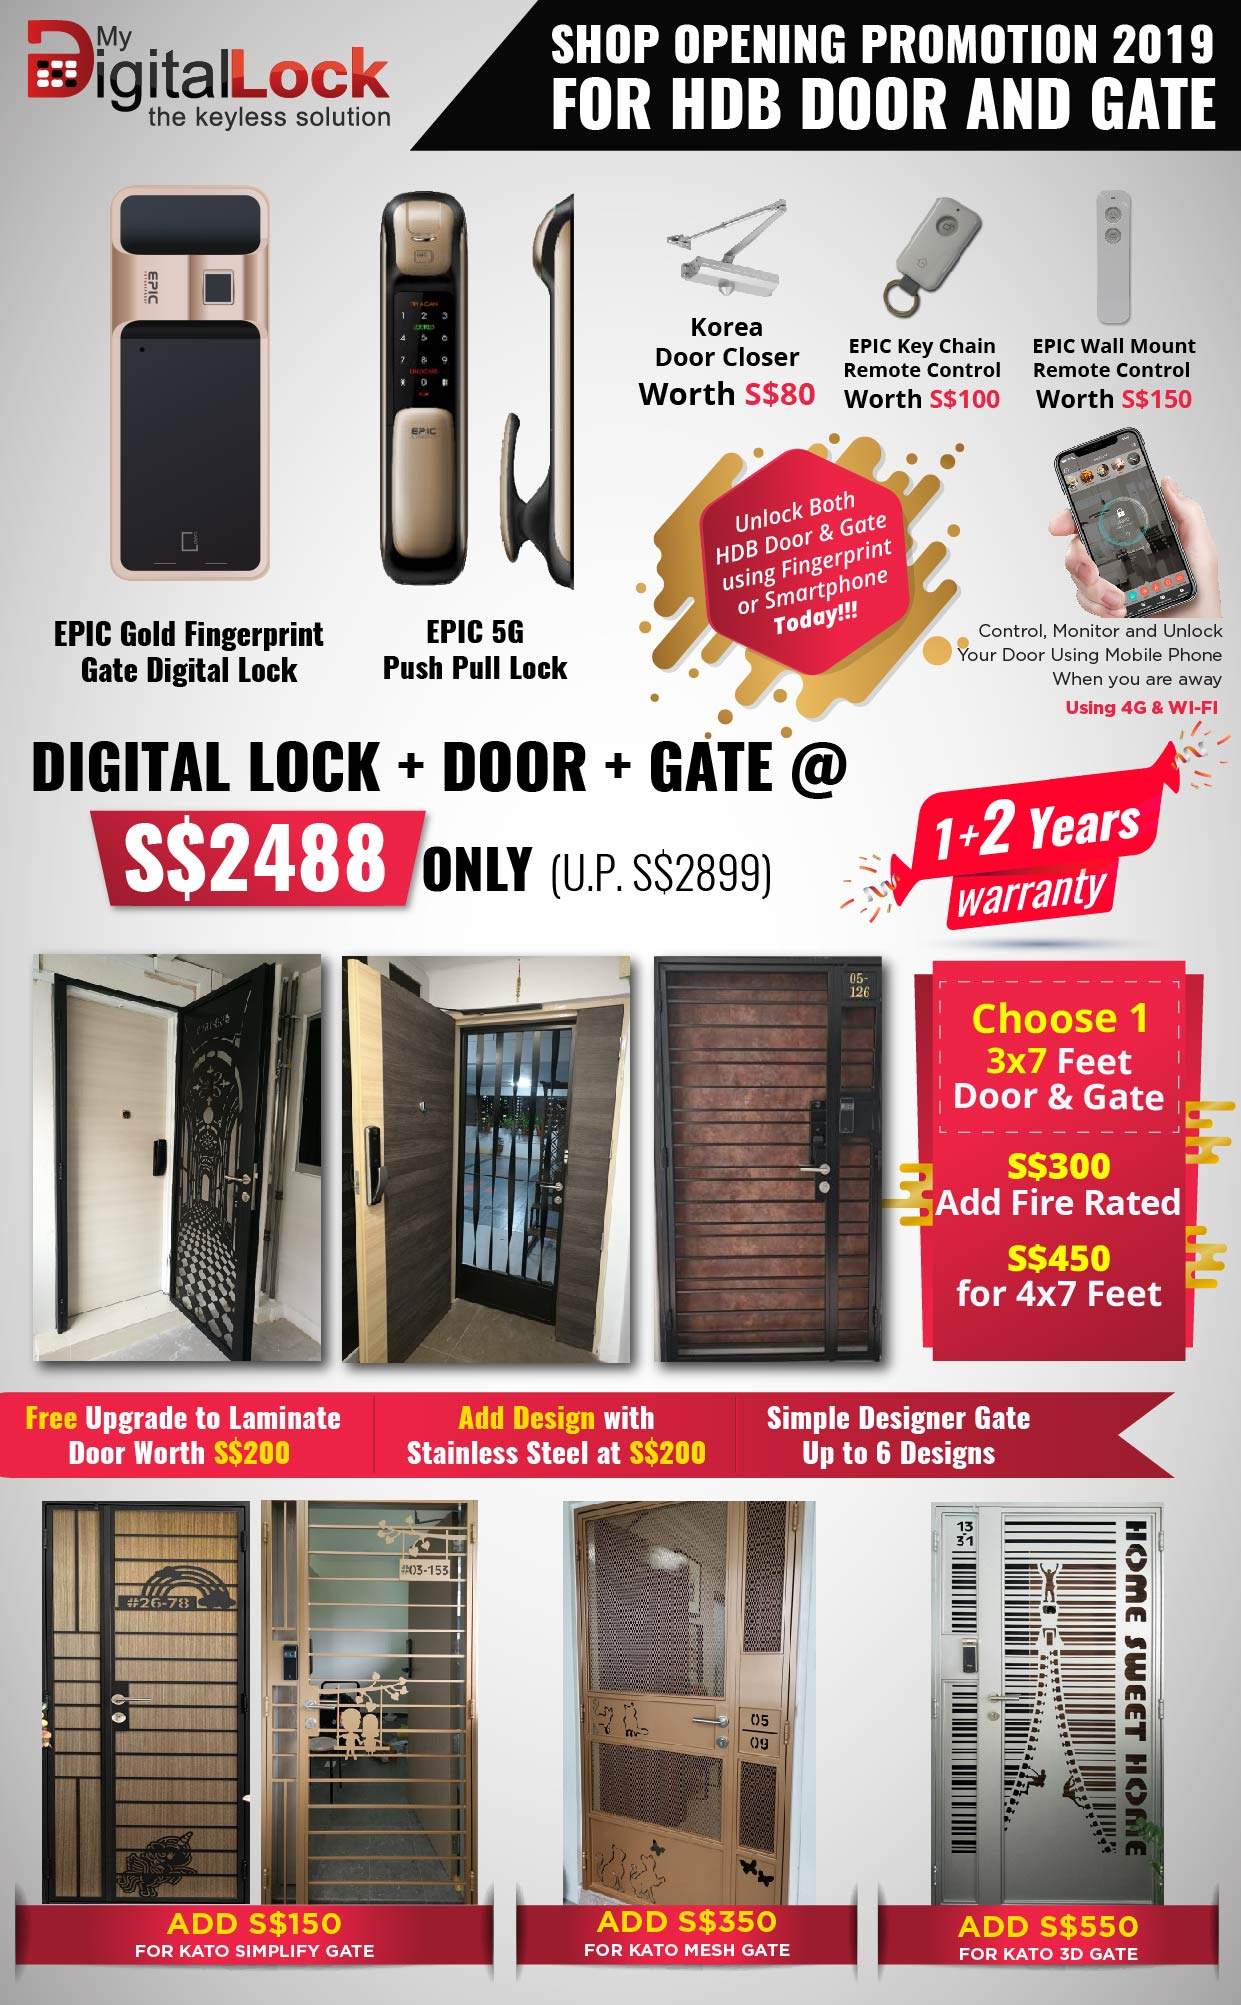 Buy EPIC Gold Fingerprint @ My Digital Lock. Call 9067 7990